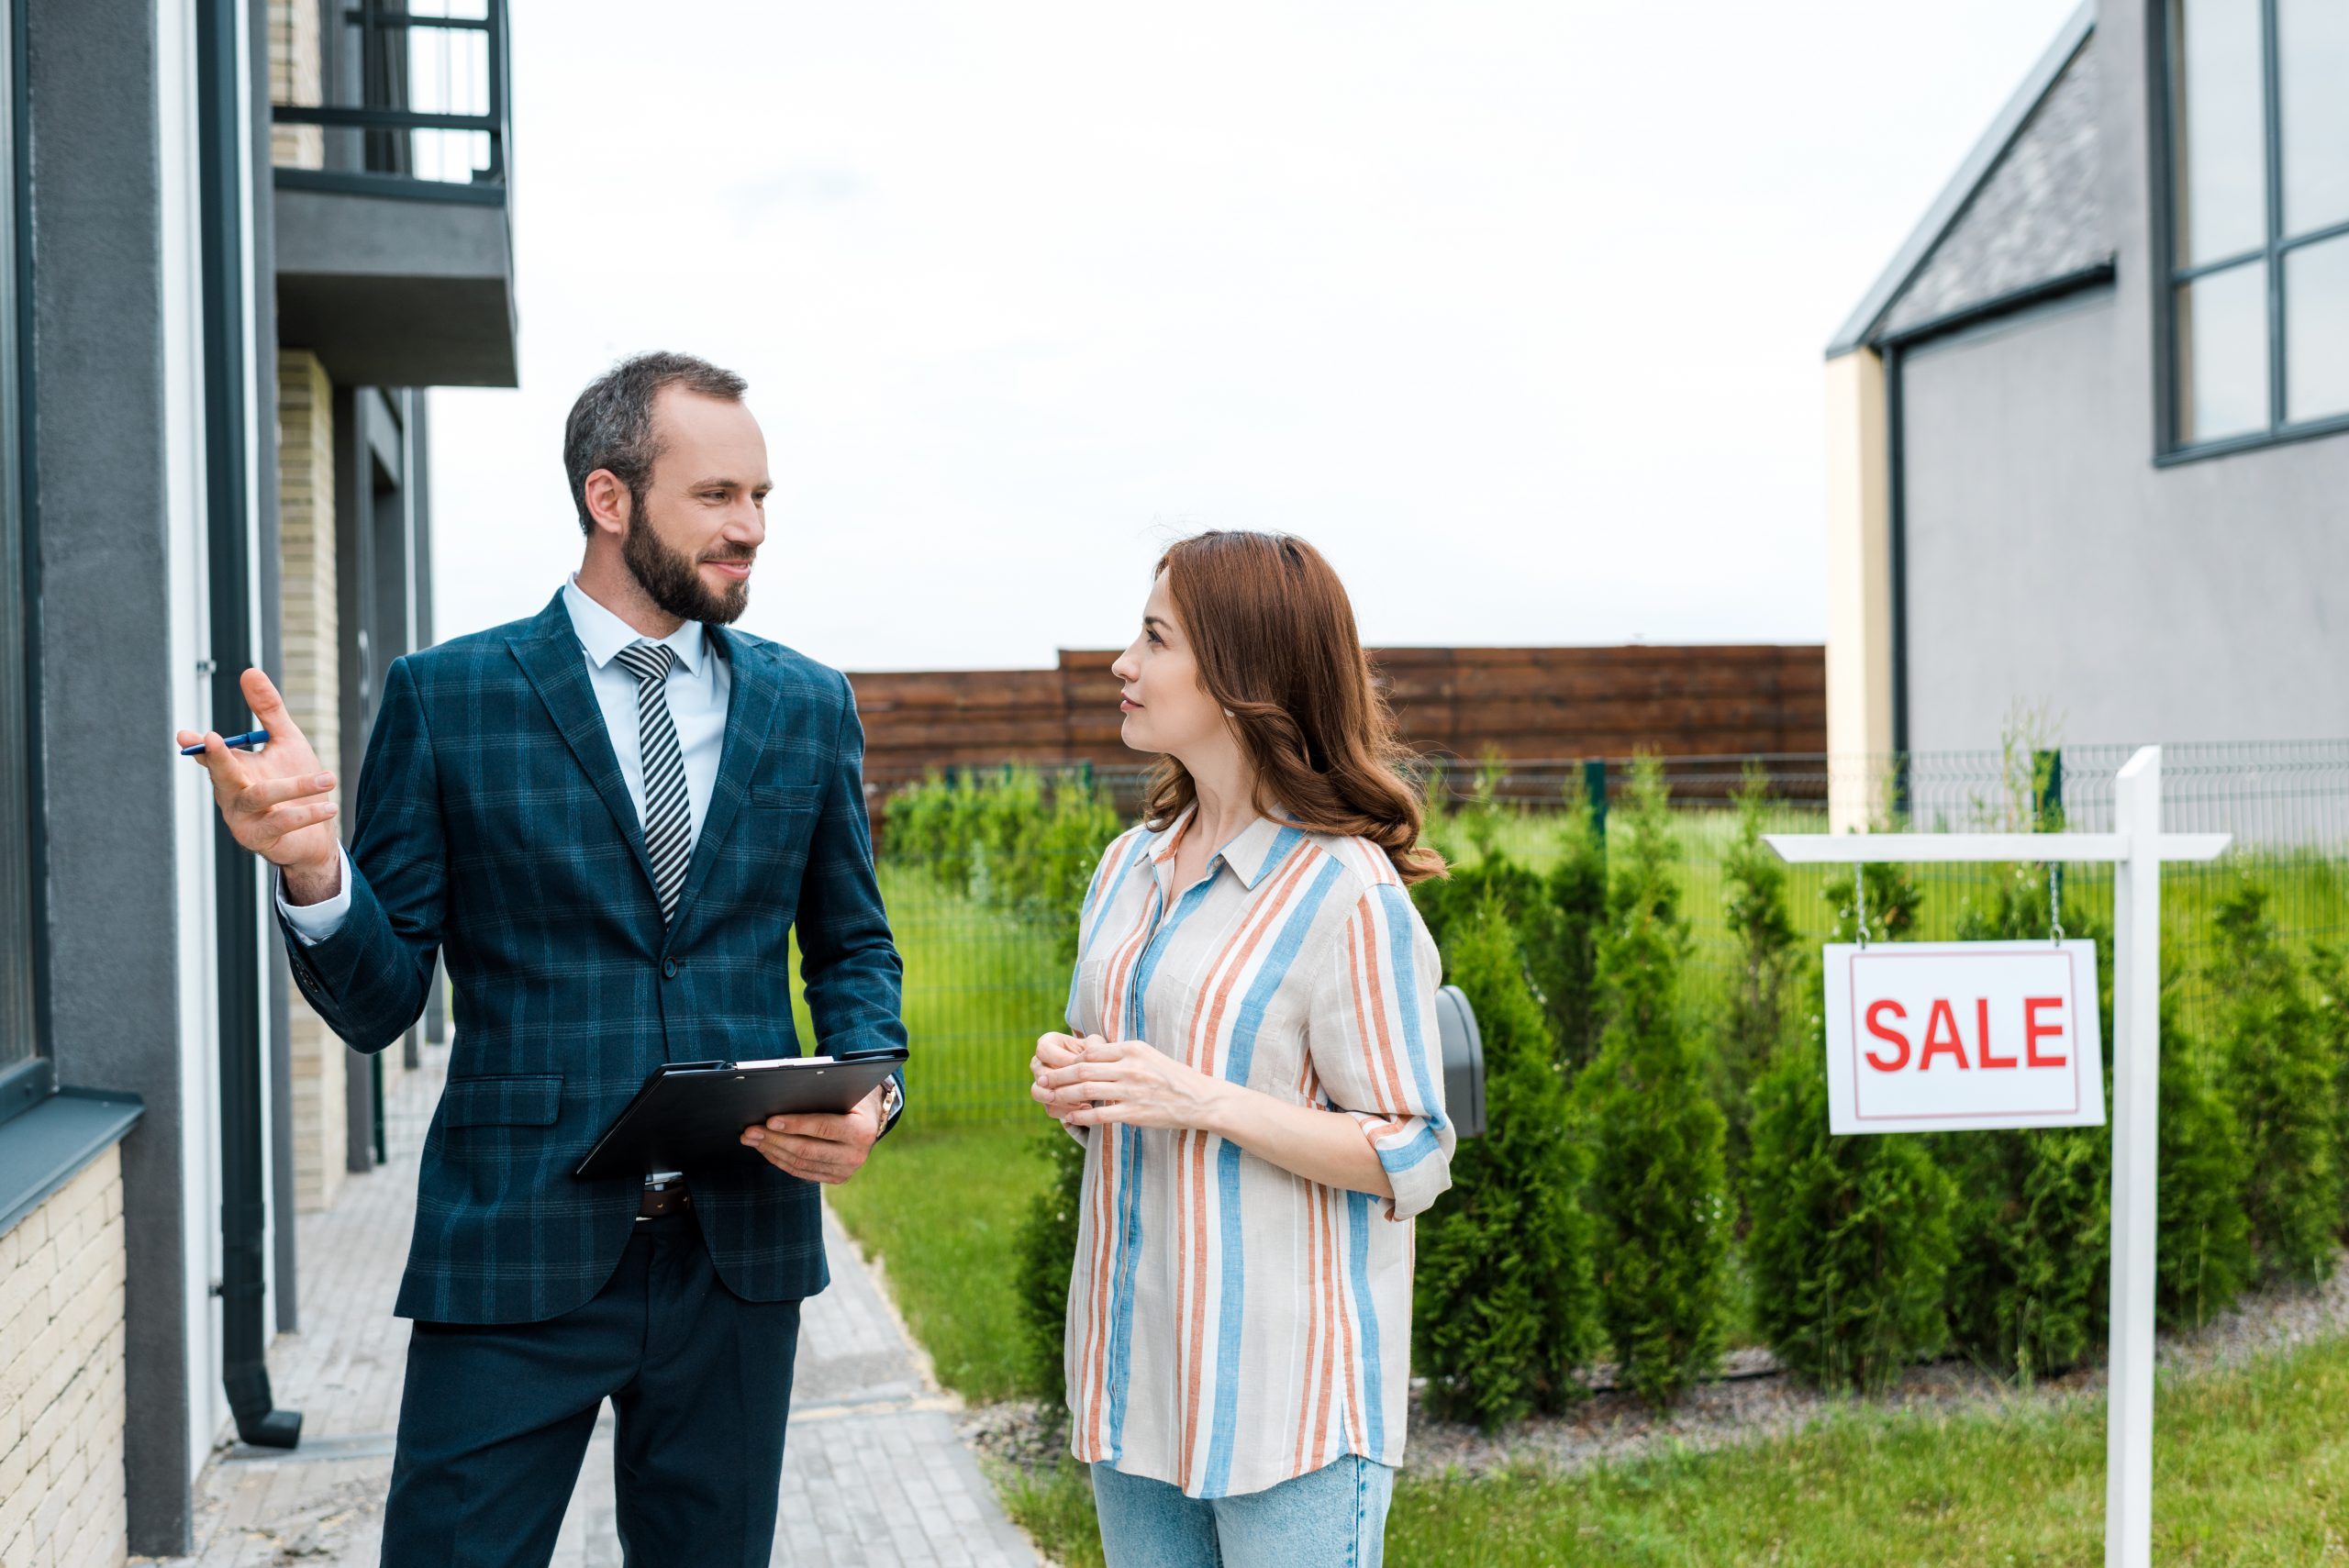 handsome bearded broker holding clipboard and gesturing near attractive woman and board with sale letters